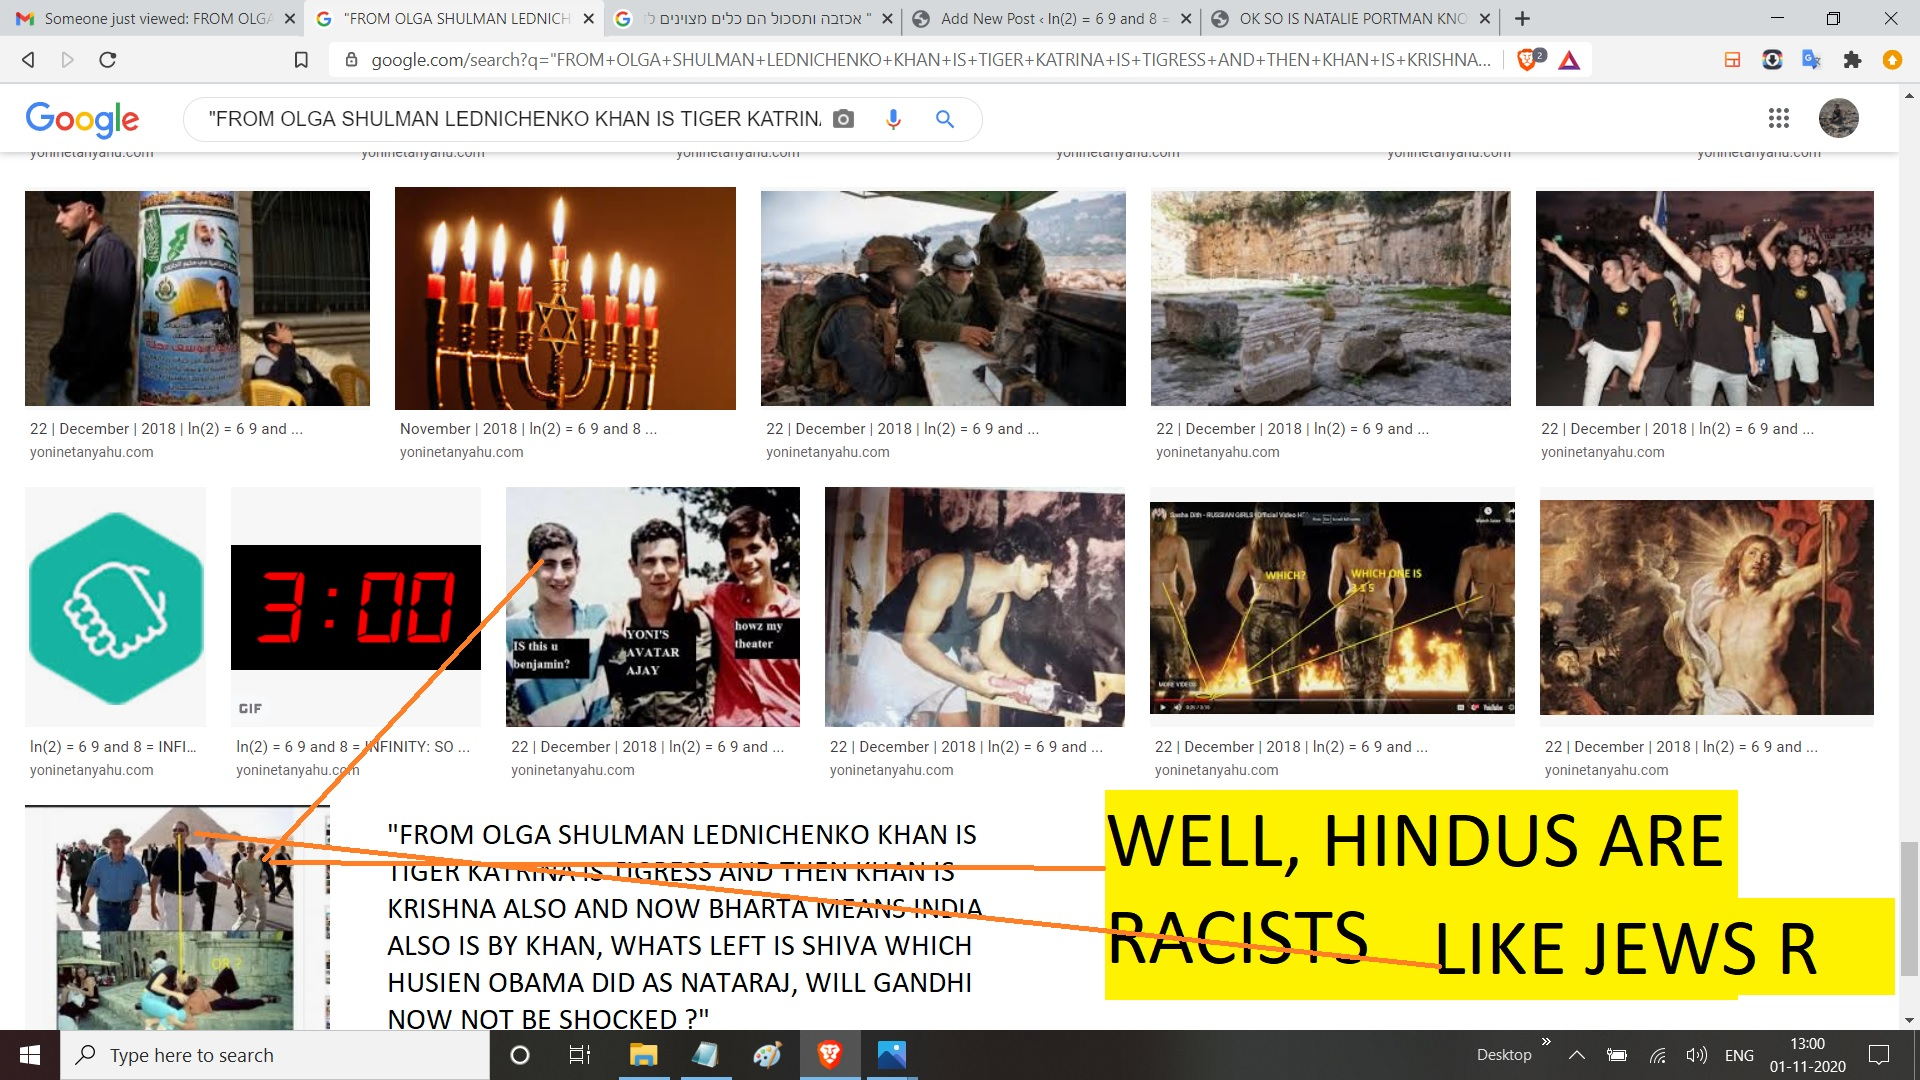 FROM OLGA SHULMAN LEDNICHENKO KHAN IS TIGER KATRINA IS TIGRESS AND THEN KHAN IS KRISHNA ALSO AND NOW BHARTA MEANS INDIA ALSO IS BY KHAN, WHATS LEFT IS SHIVA WHICH HUSIEN O